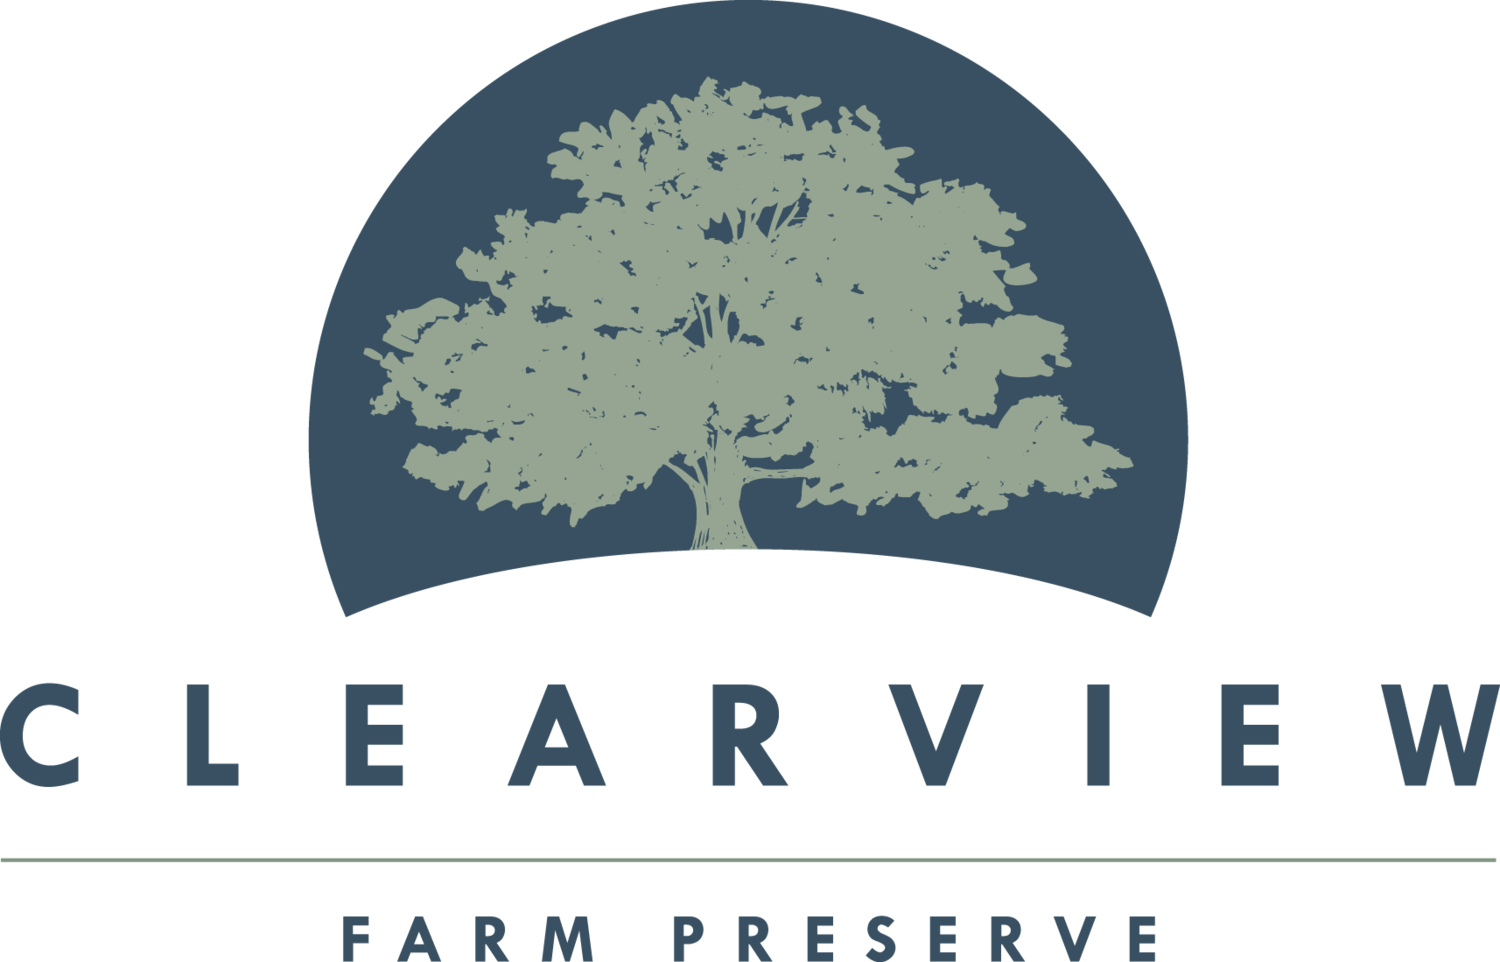 Clearview Farm Preserve